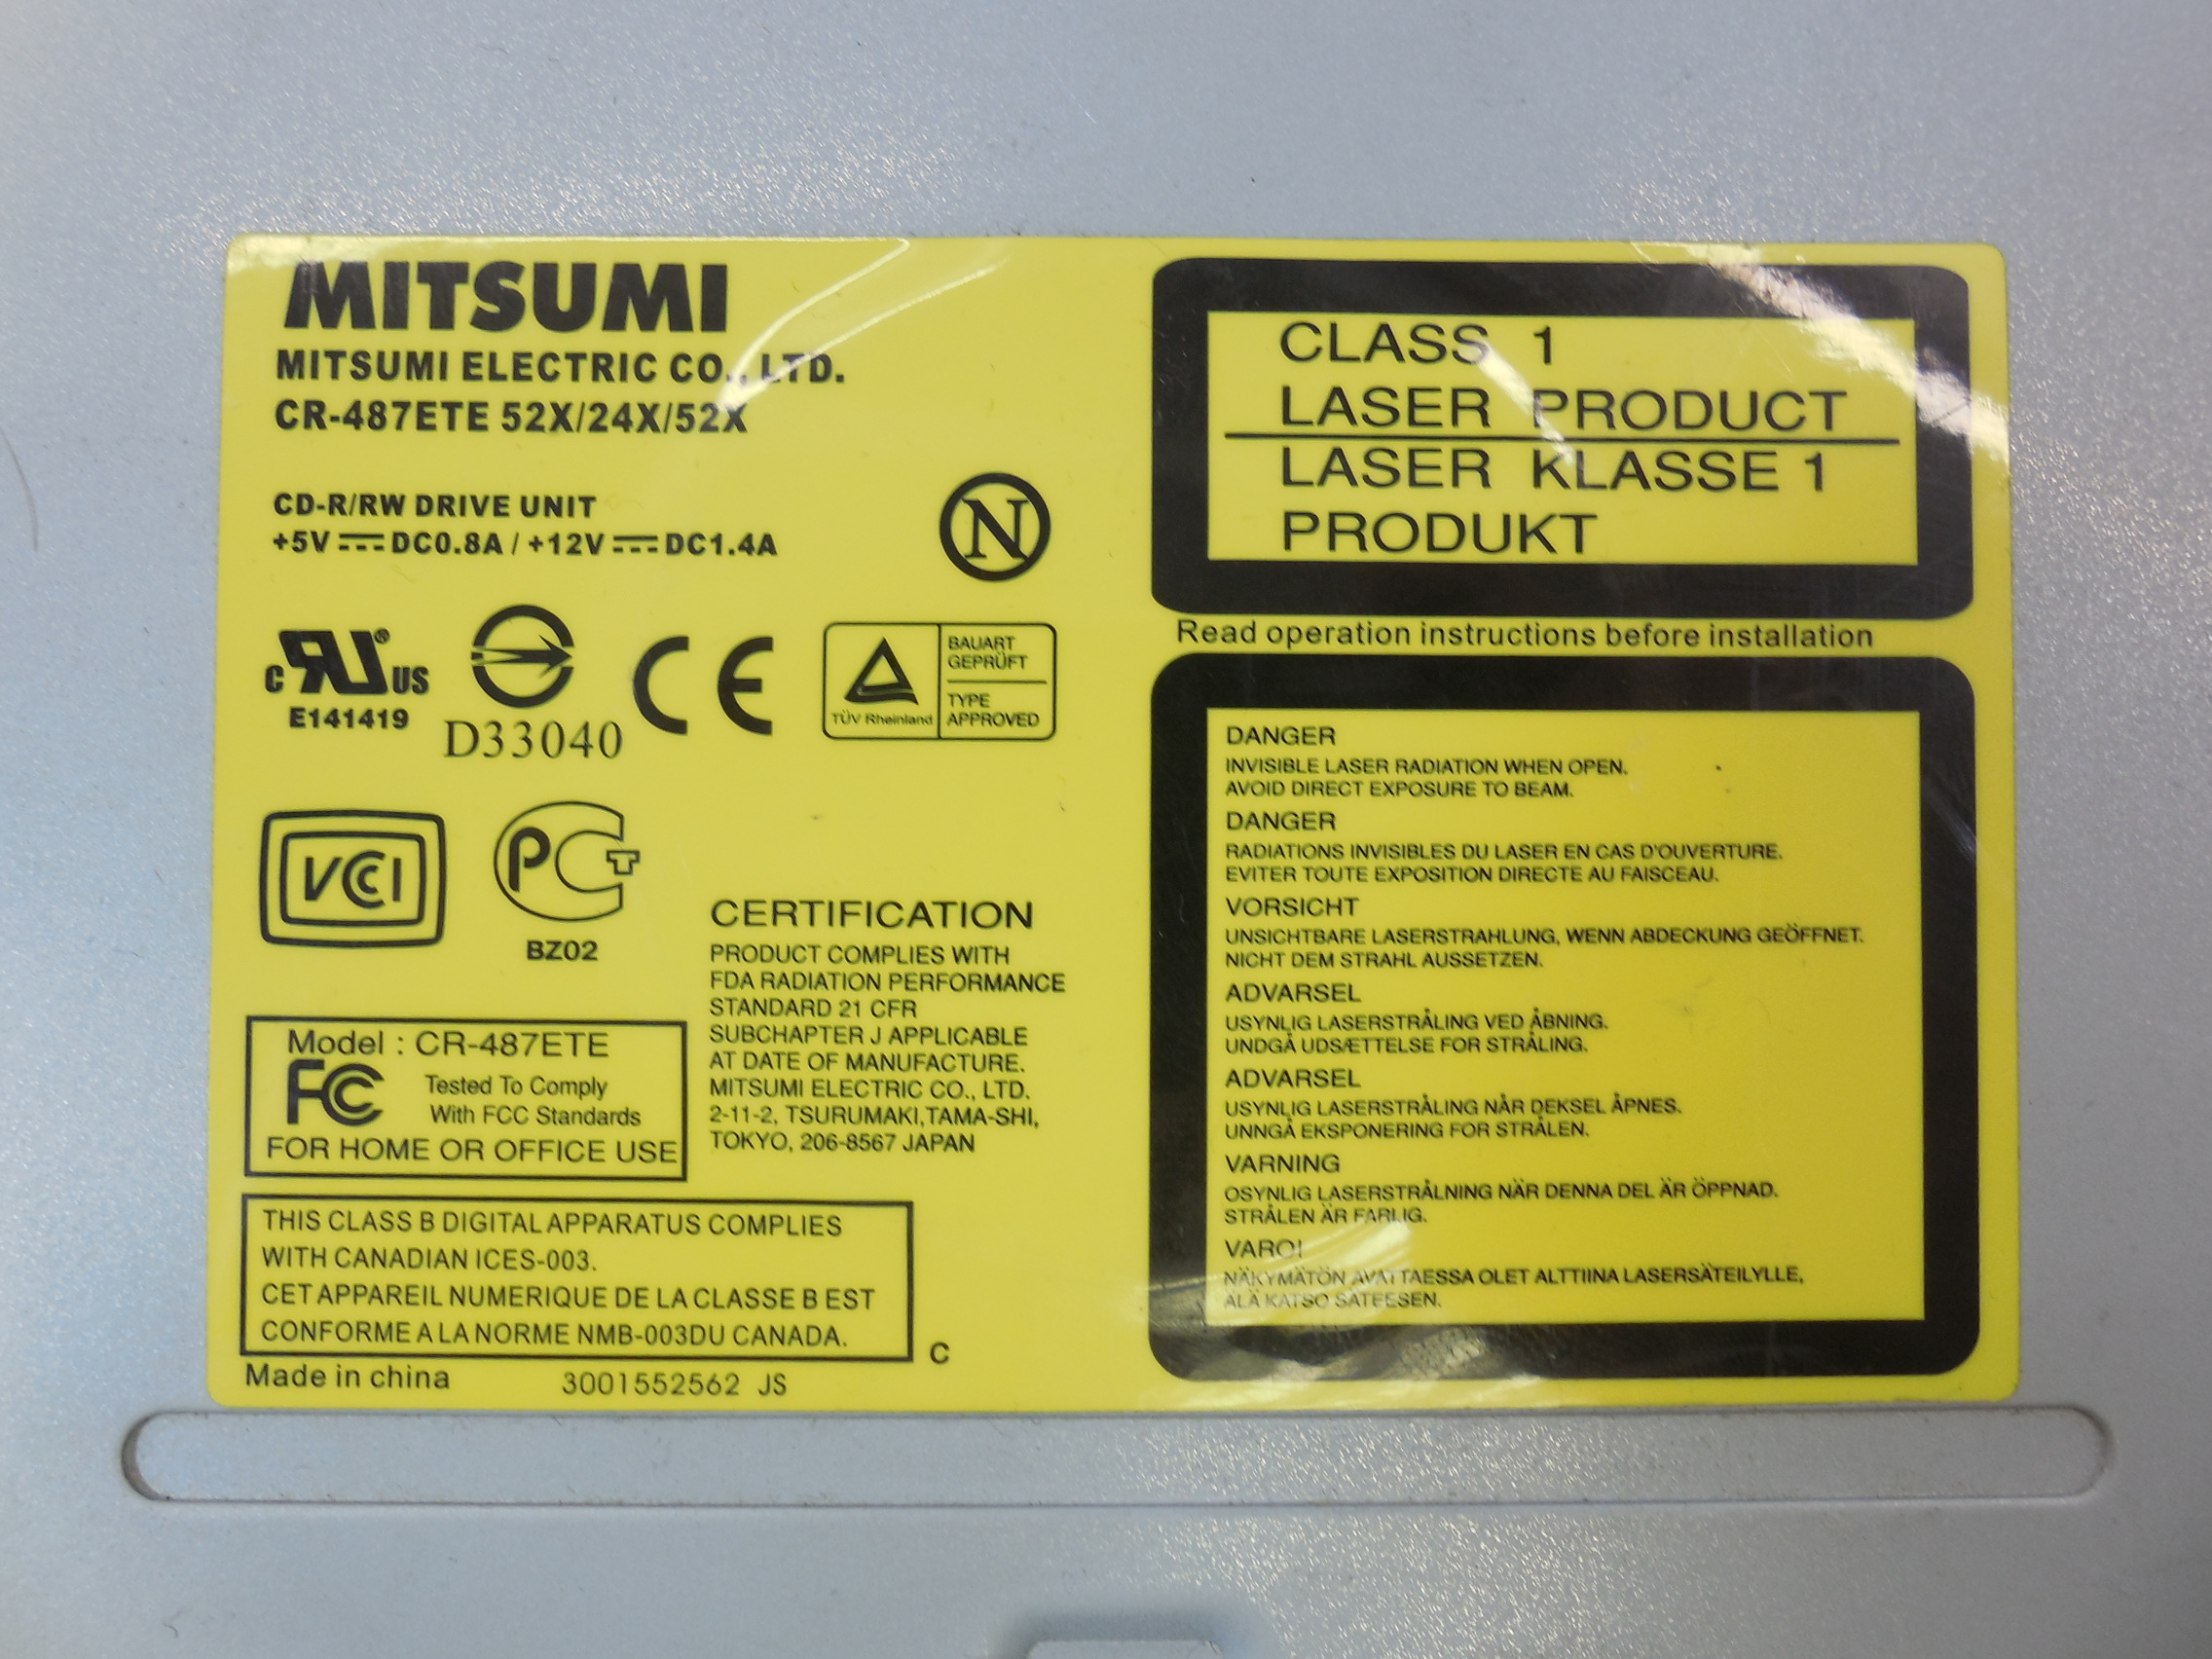 MITSUMI CRXATE USB Device - drivers for windows xp FOUND